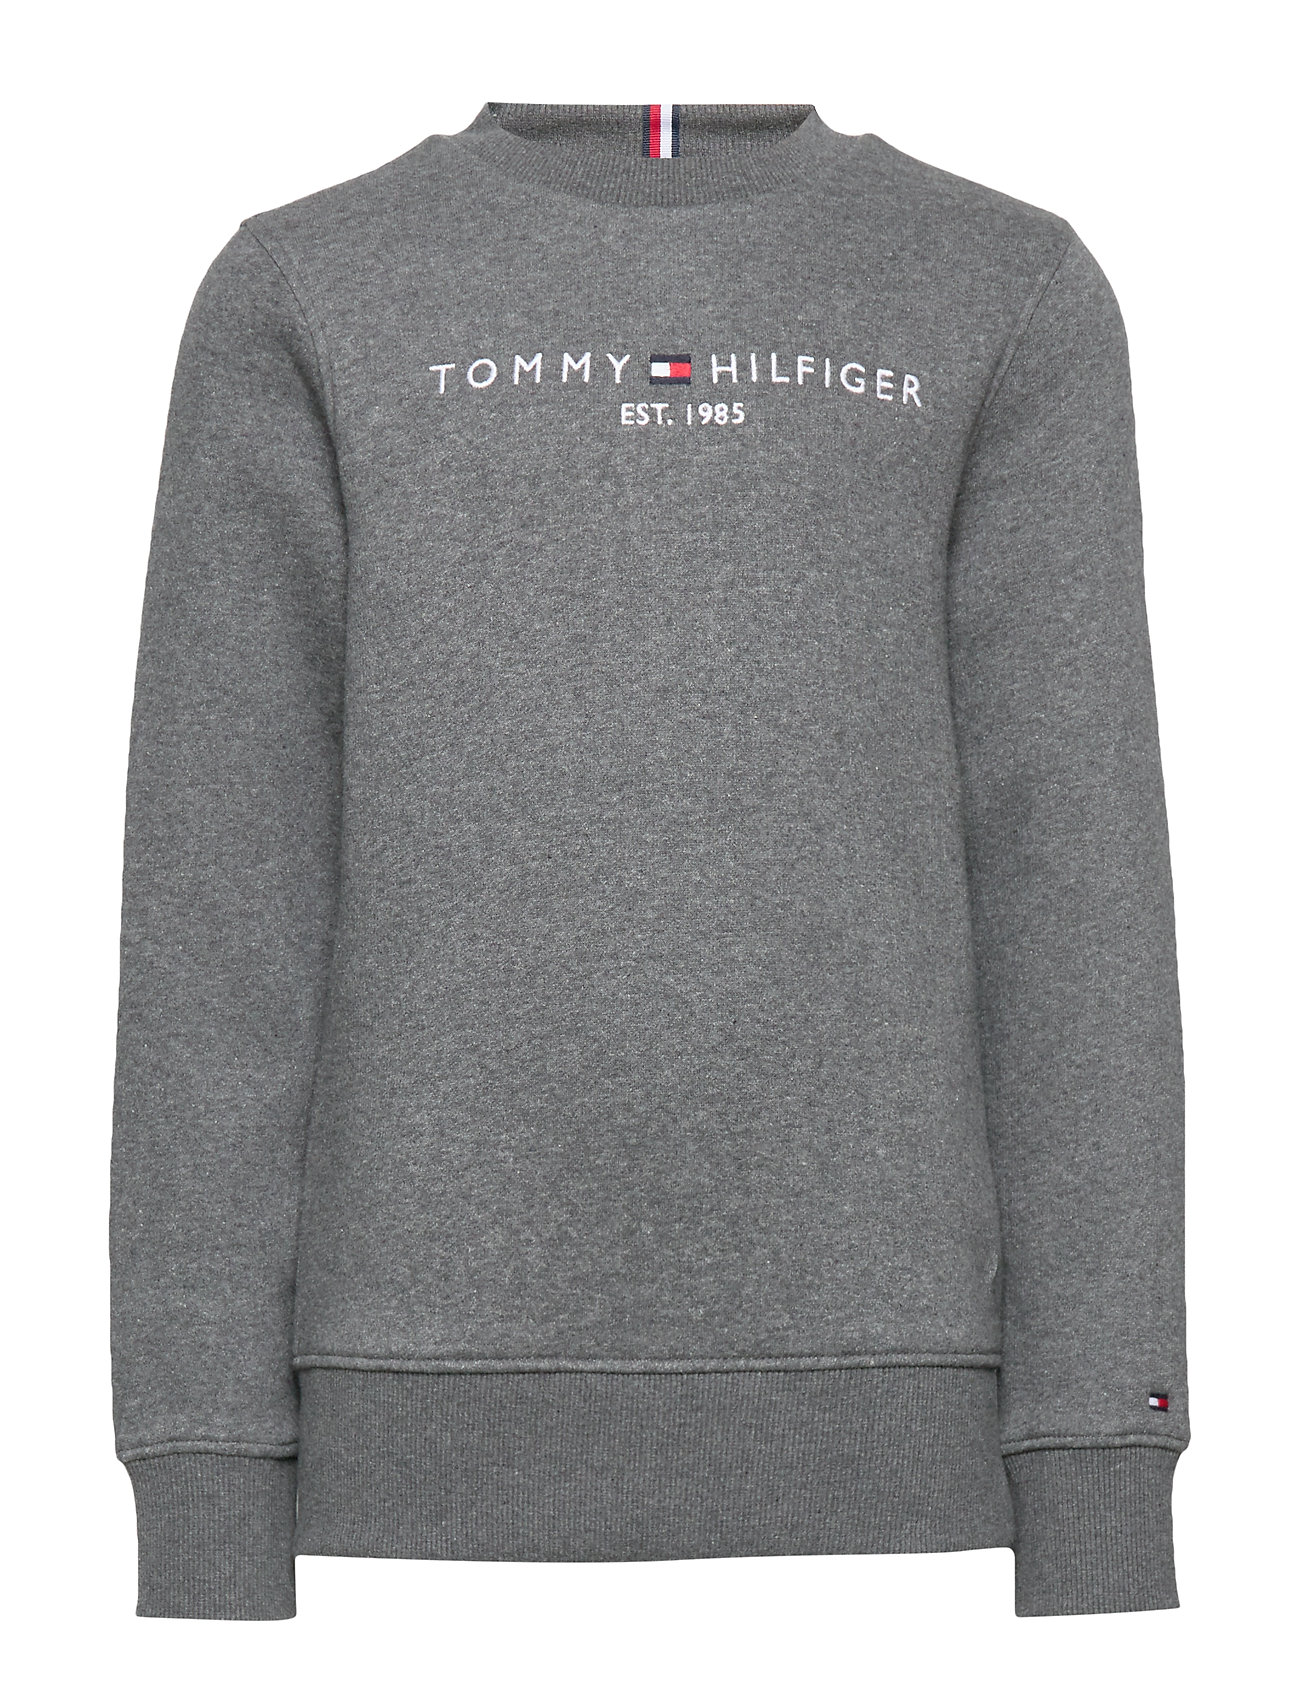 Tommy Hilfiger ESSENTIAL CN SWEATSHIRT SET 1 - CHARCOAL HEATHER